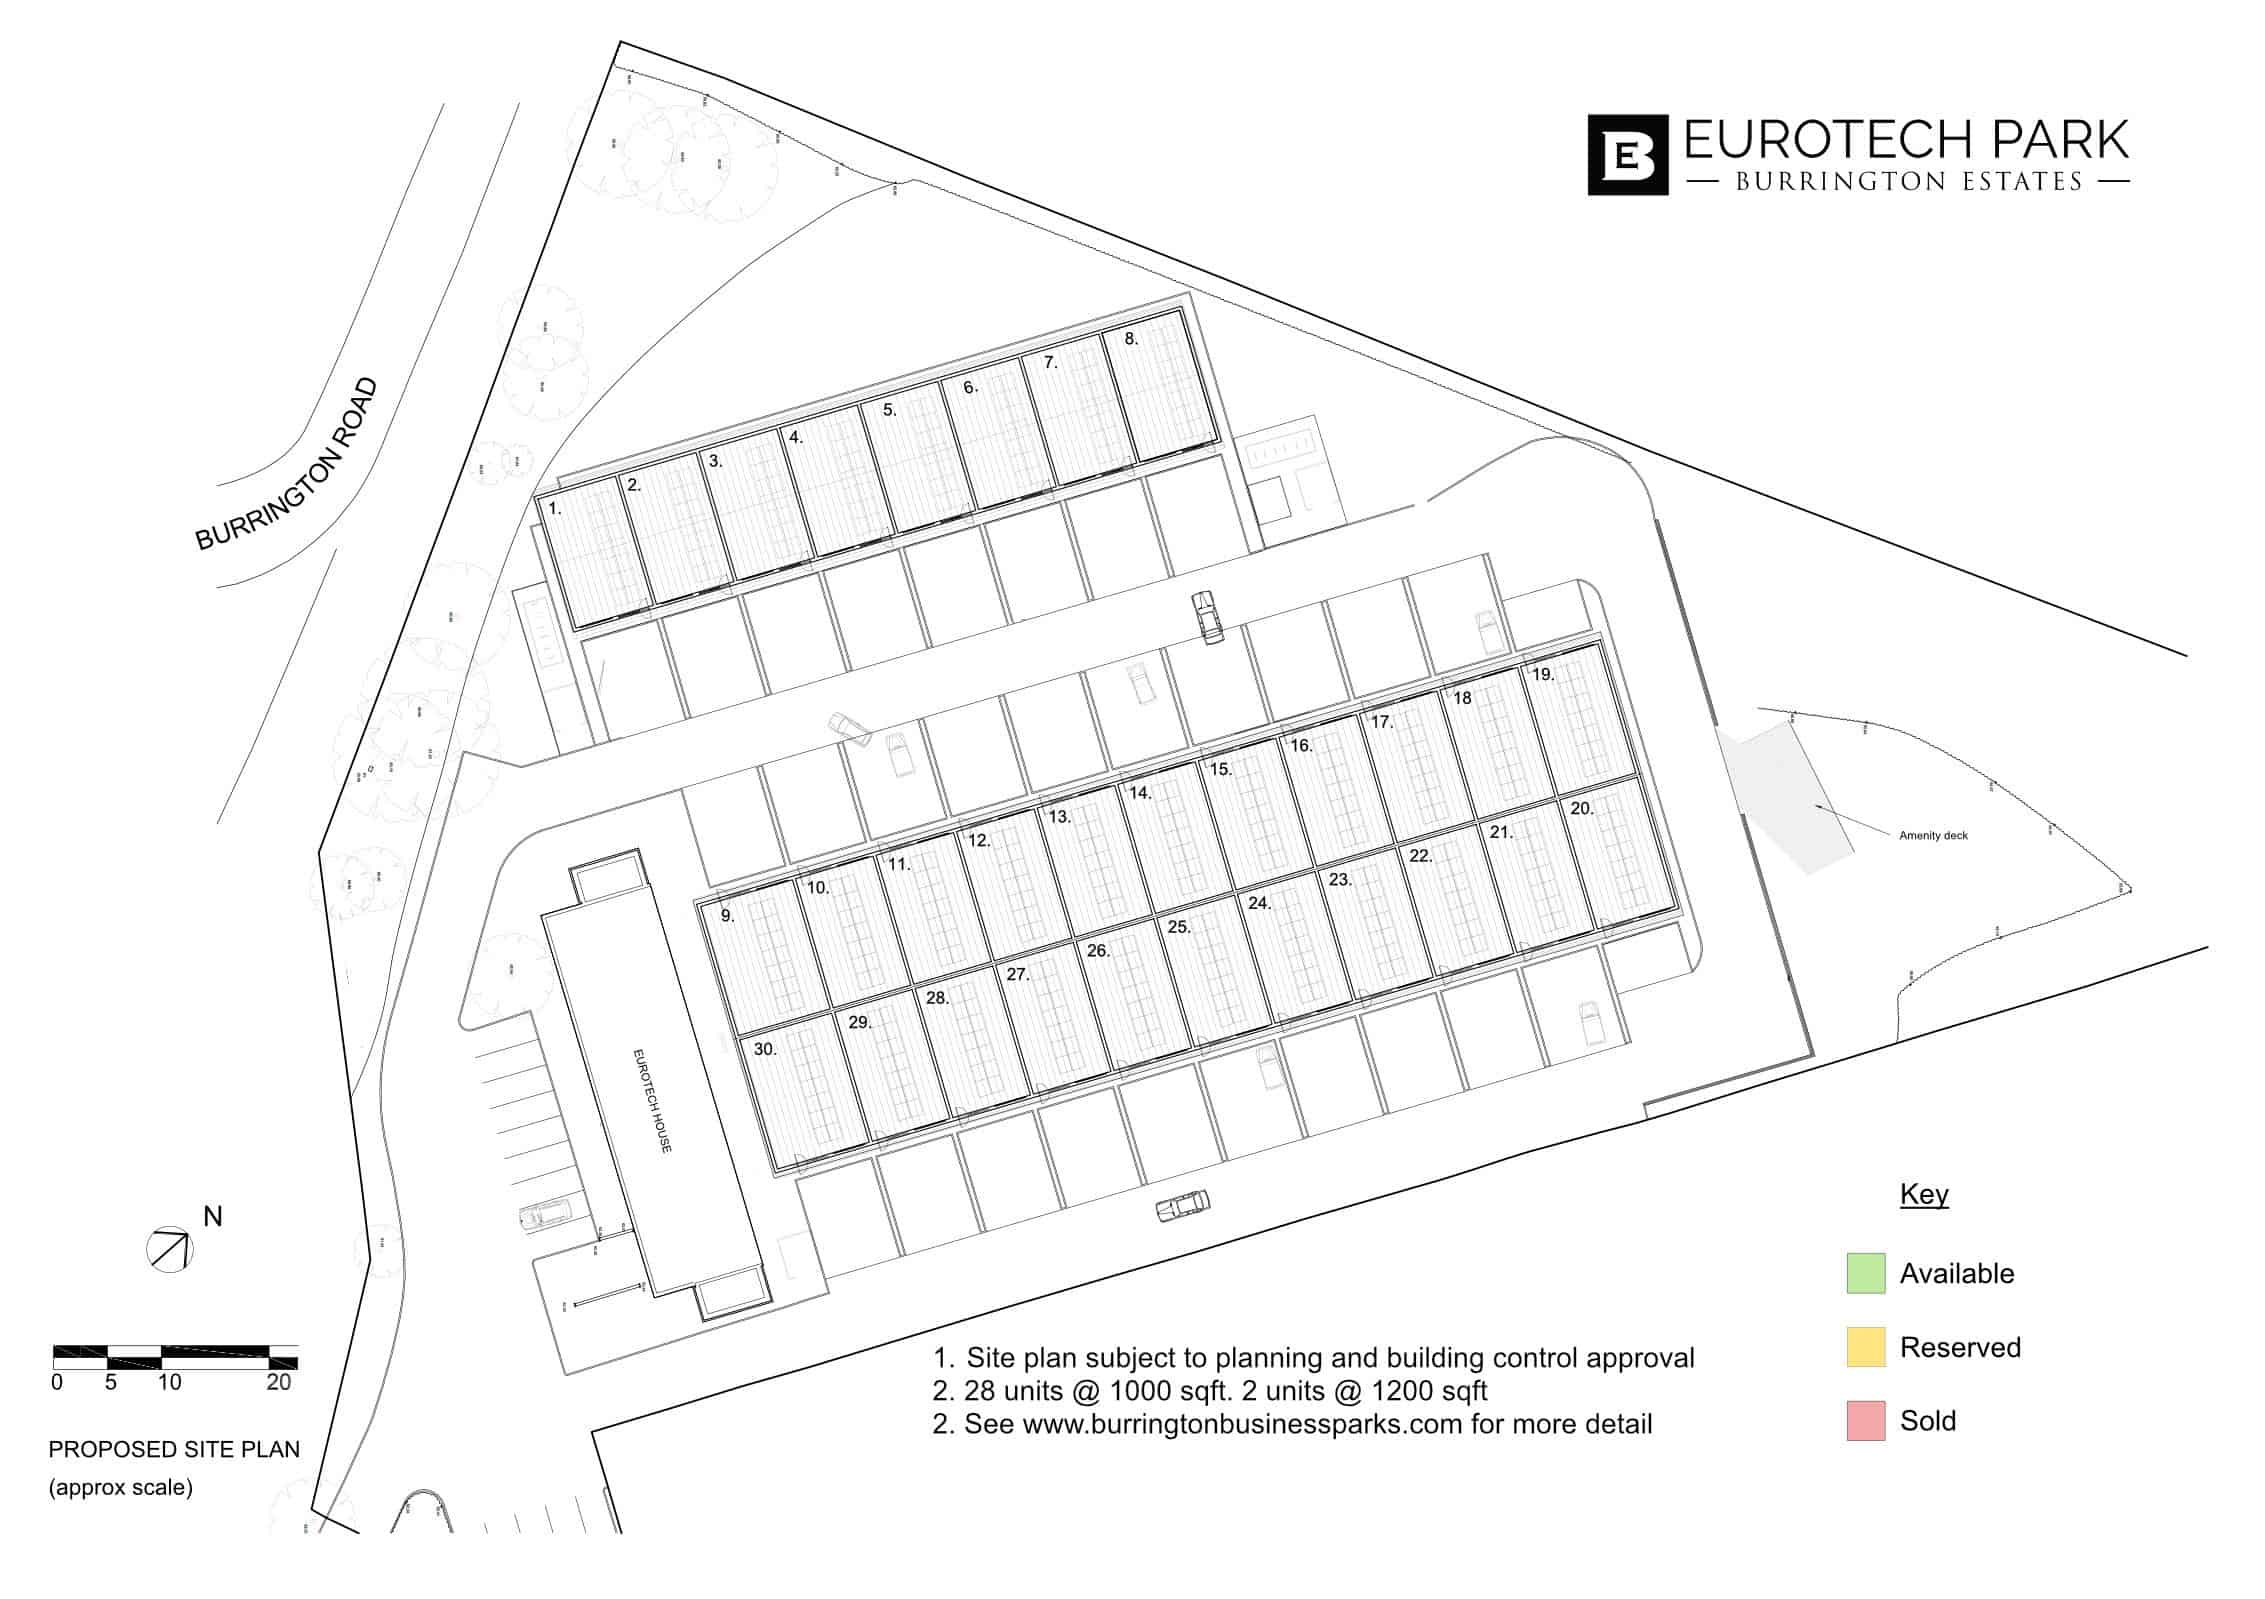 Eurotech Park site plan for Draw Attention availability